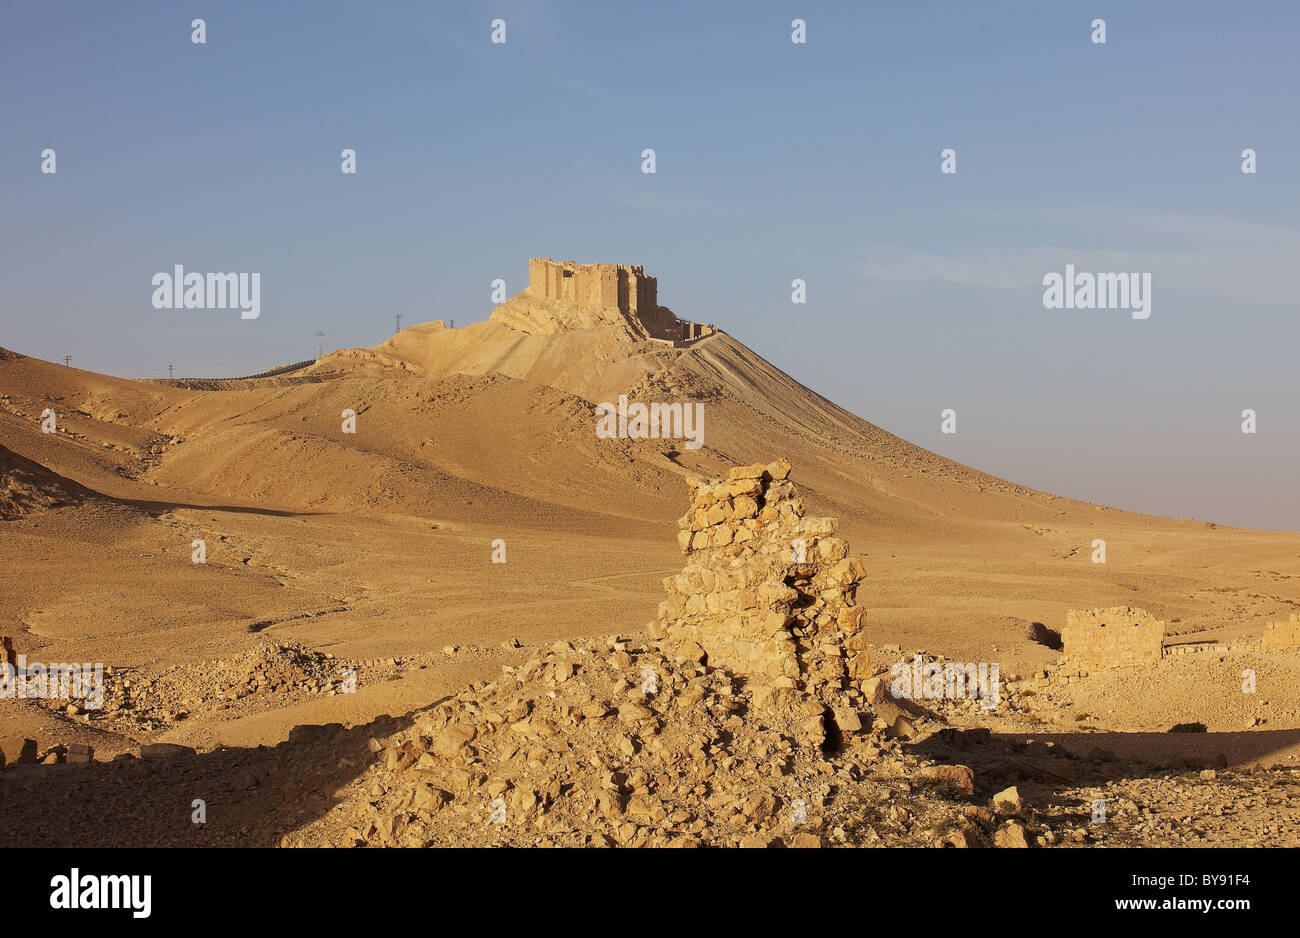 Arab fortress of Qal'at Ibn Ma'an, overlooking Palmyra, Syria. Taken in the evening sun; ruins of tower - Stock Image